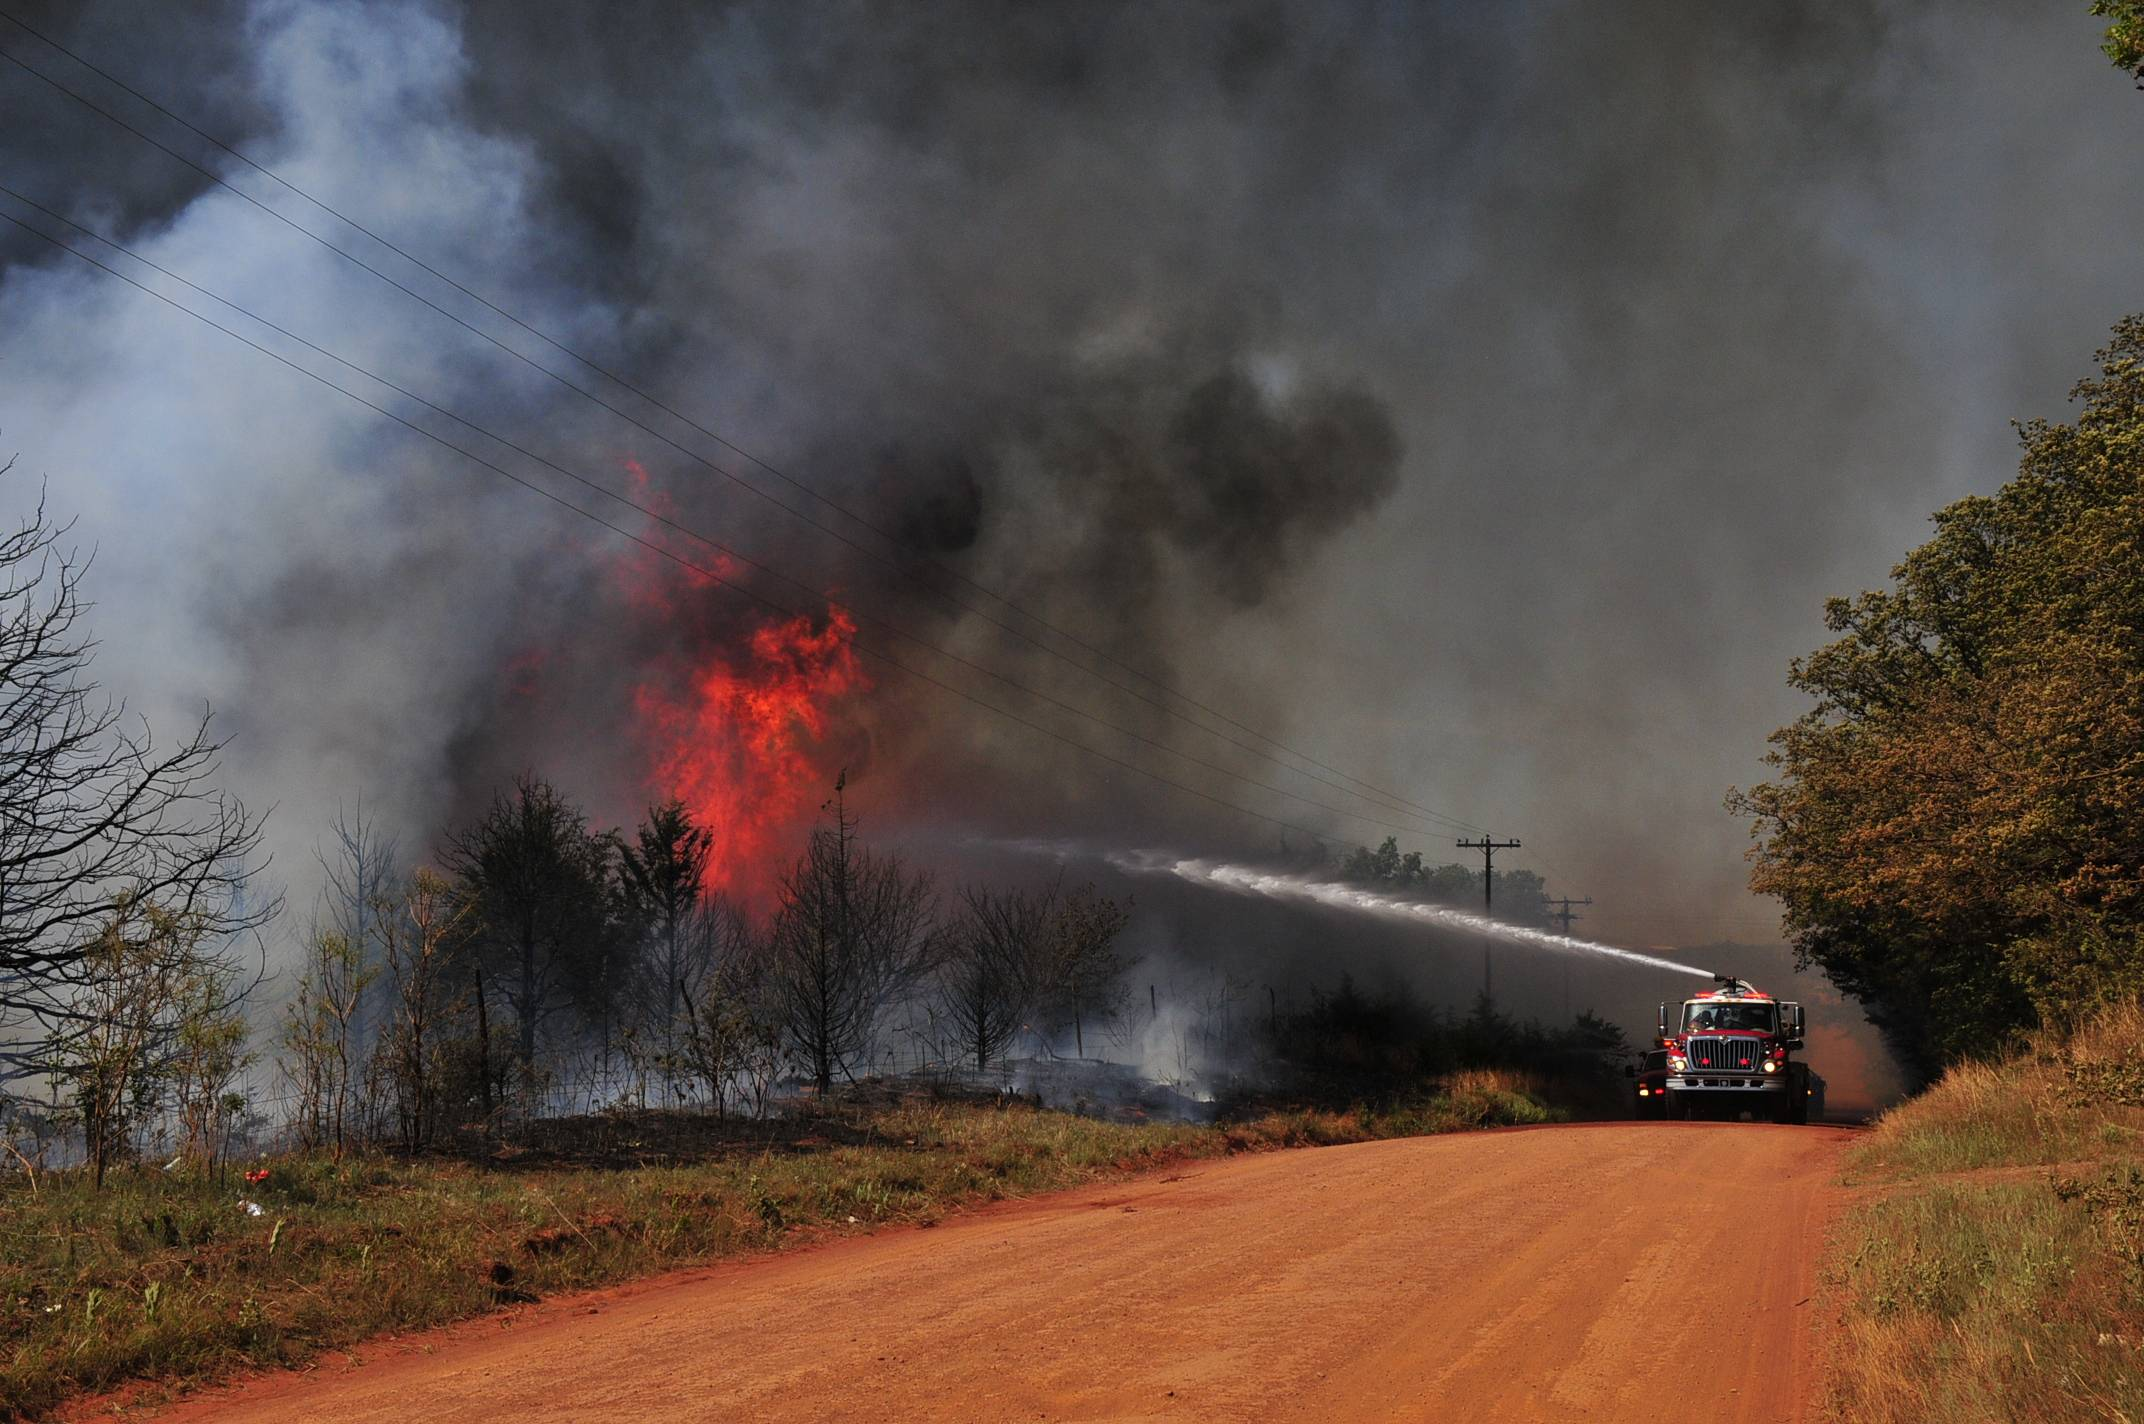 Firefighters work to extinguish a flare-up Monday in Guthrie, Okla. Gov. Mary Fallin declared a state emergency across Oklahoma after several wildfires broke out across the state, including a blaze north of Oklahoma City that destroyed at least a half dozen homes and left one man dead.